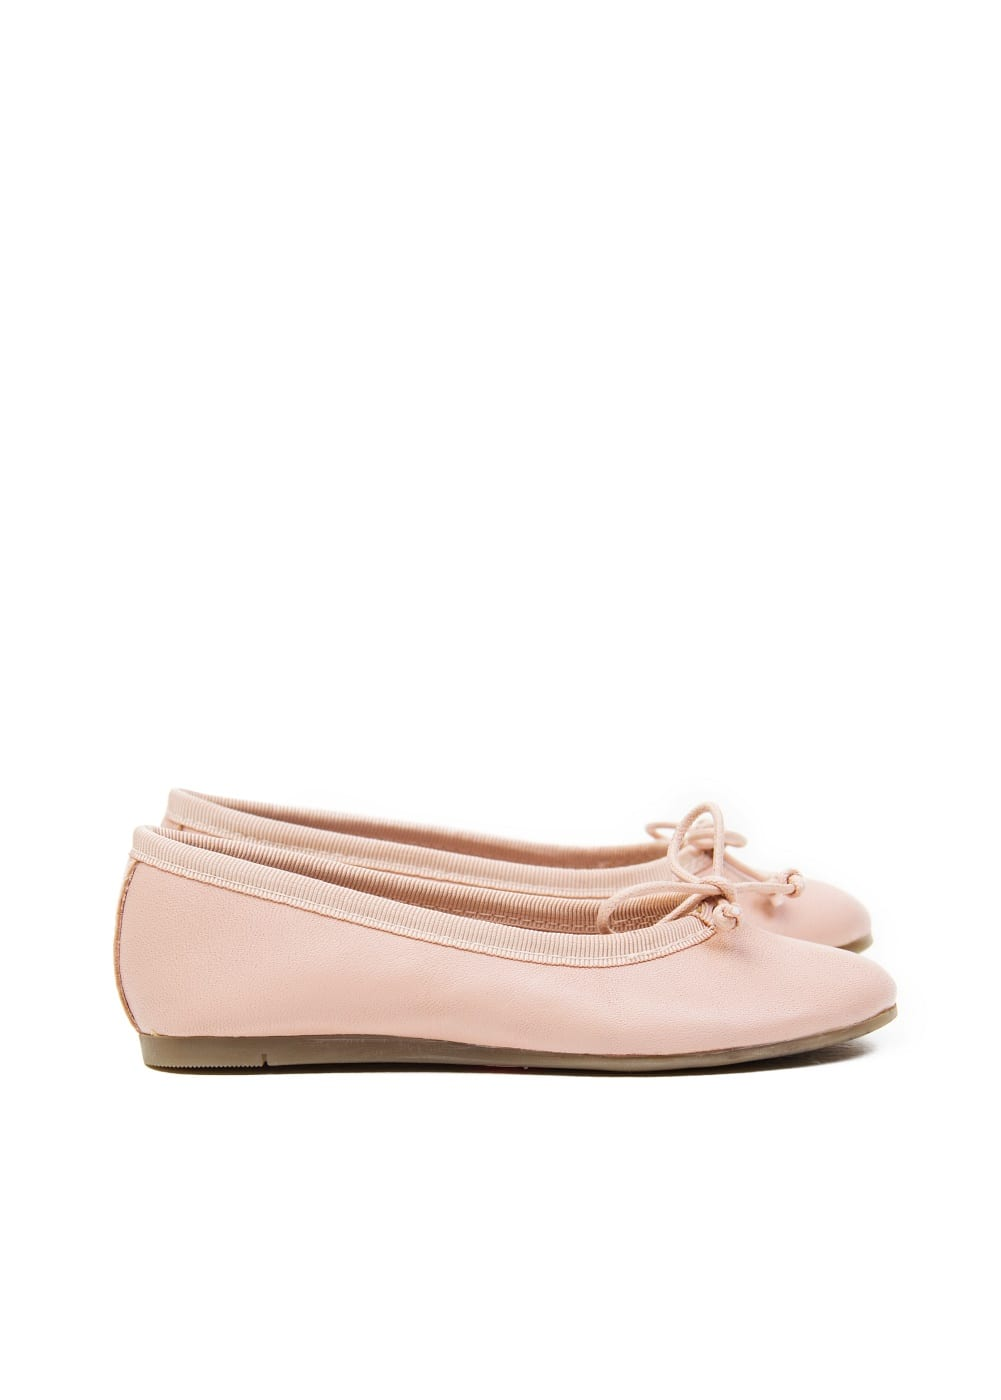 Bow leather ballerinas